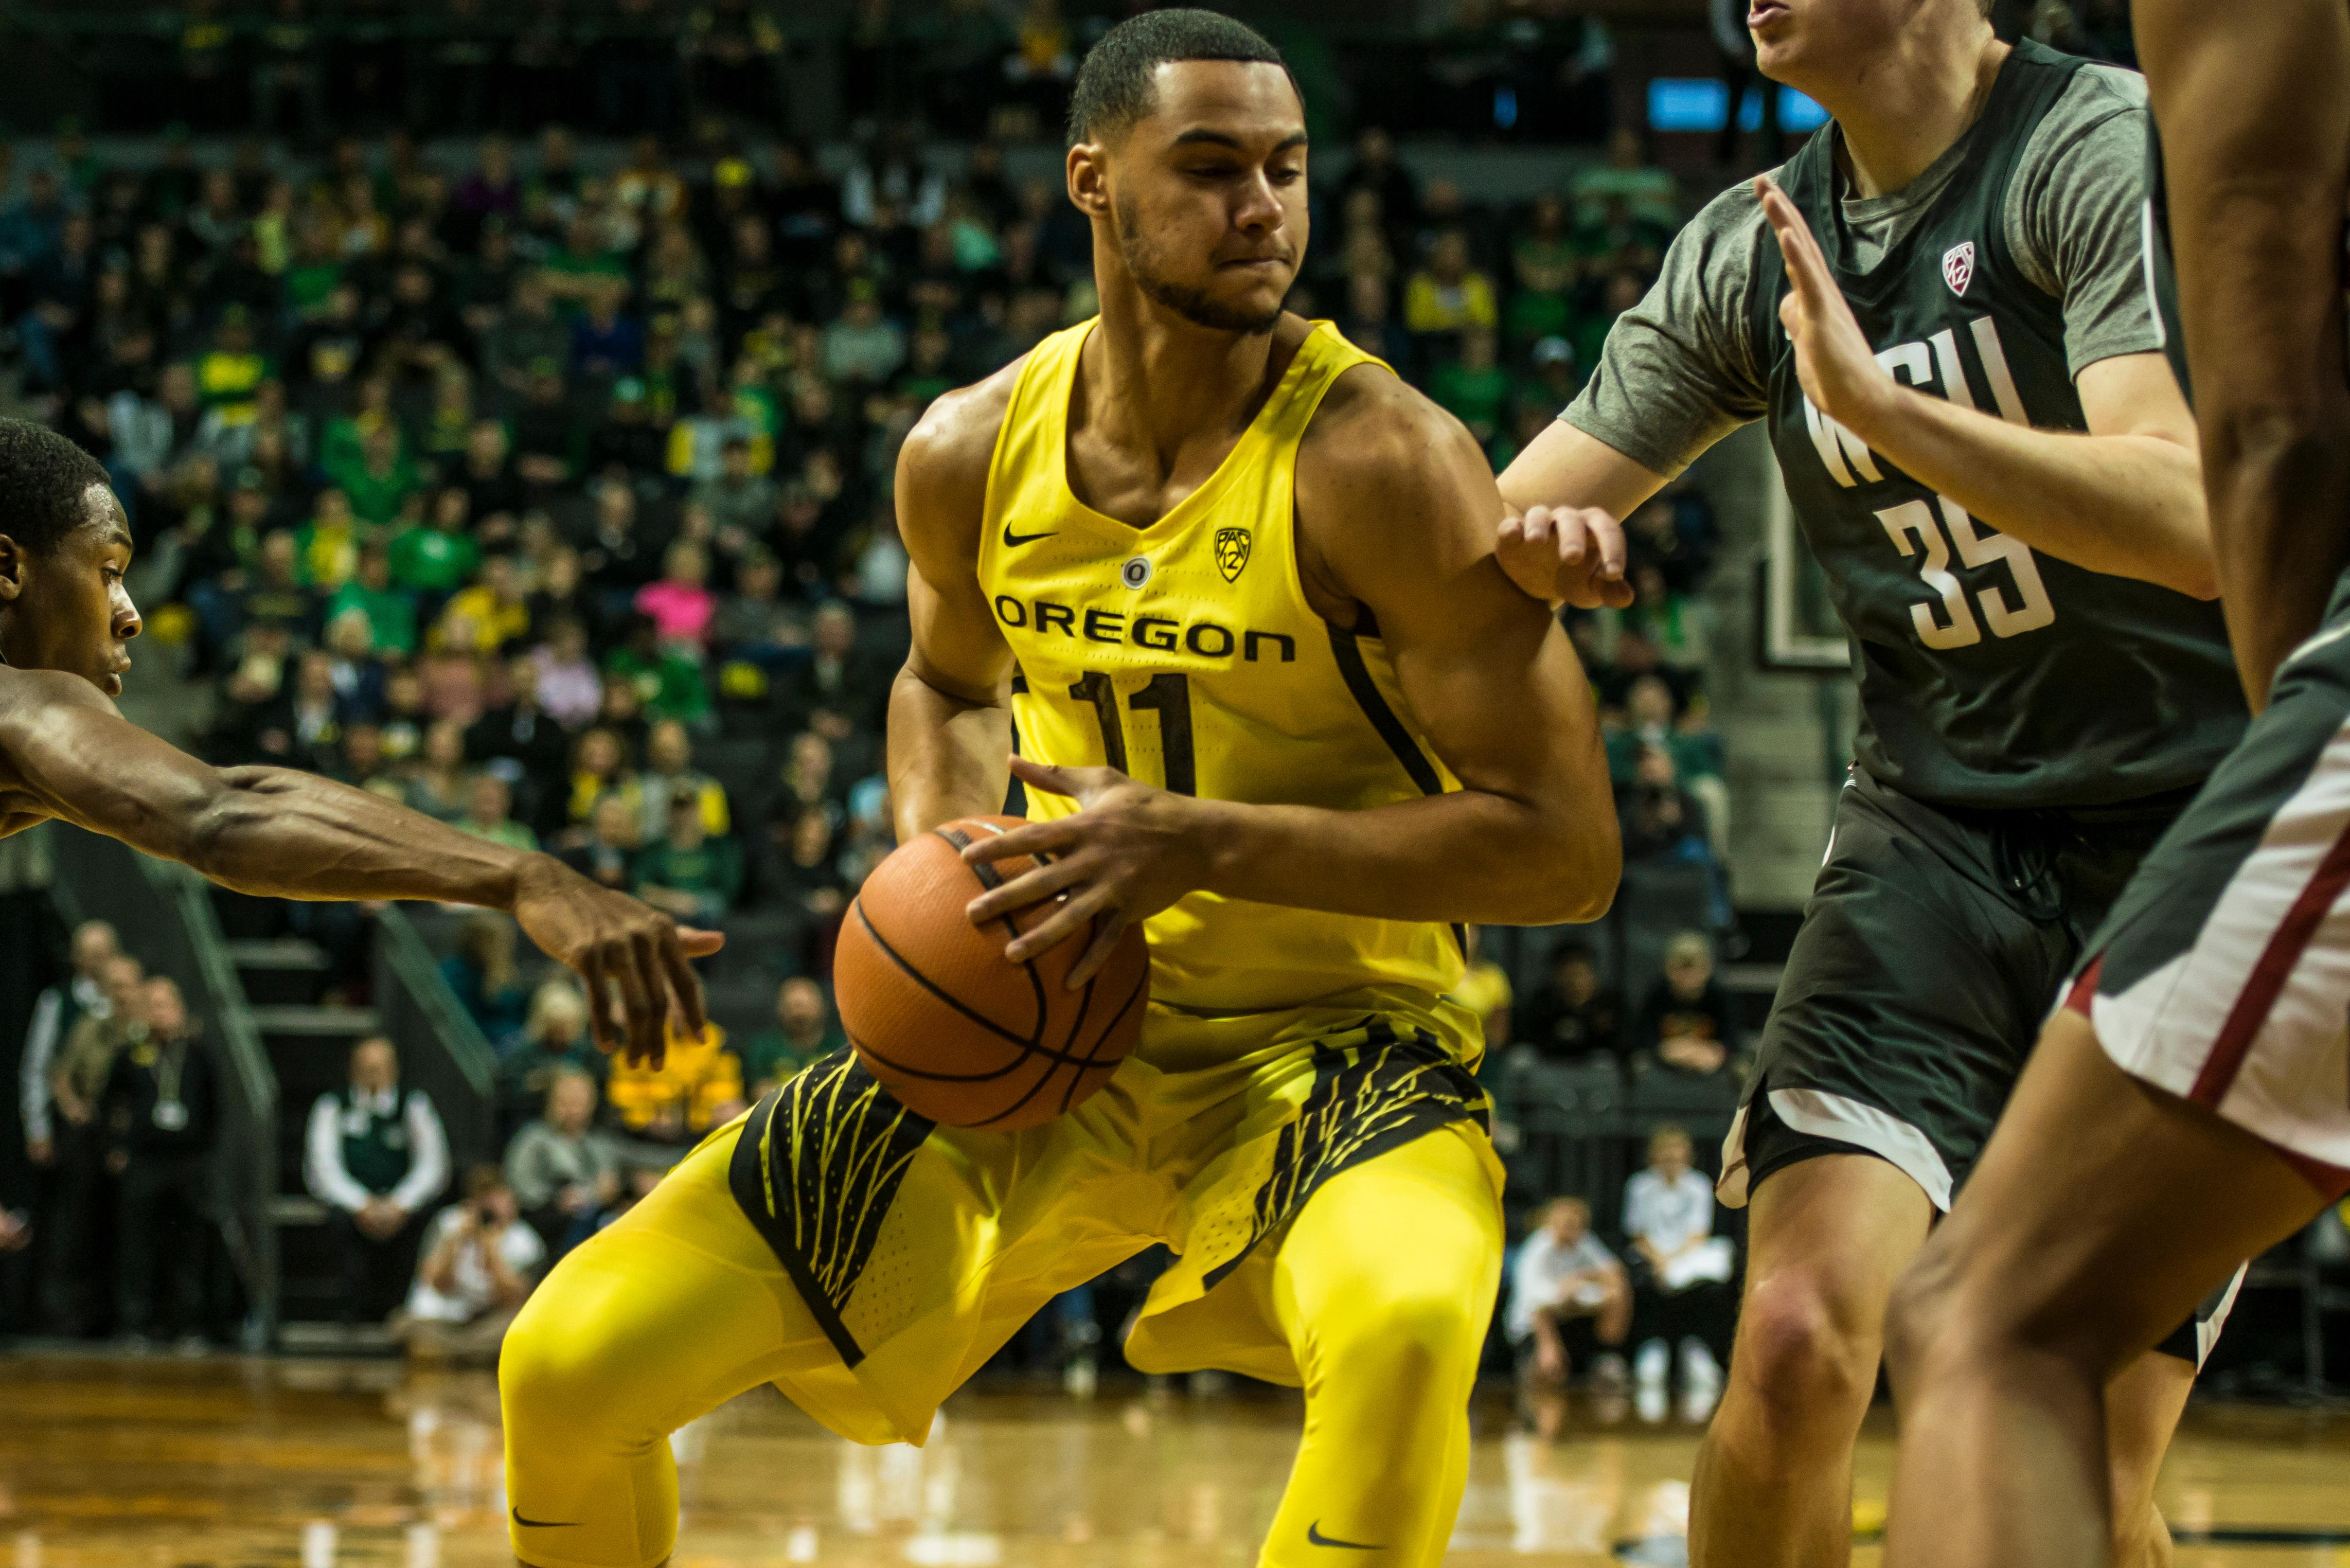 The Oregon Ducks took down the Washington State Cougars, 84-57, on Sunday, led by Payton Pritchard. (Photo Courtesy of Colin Houck).